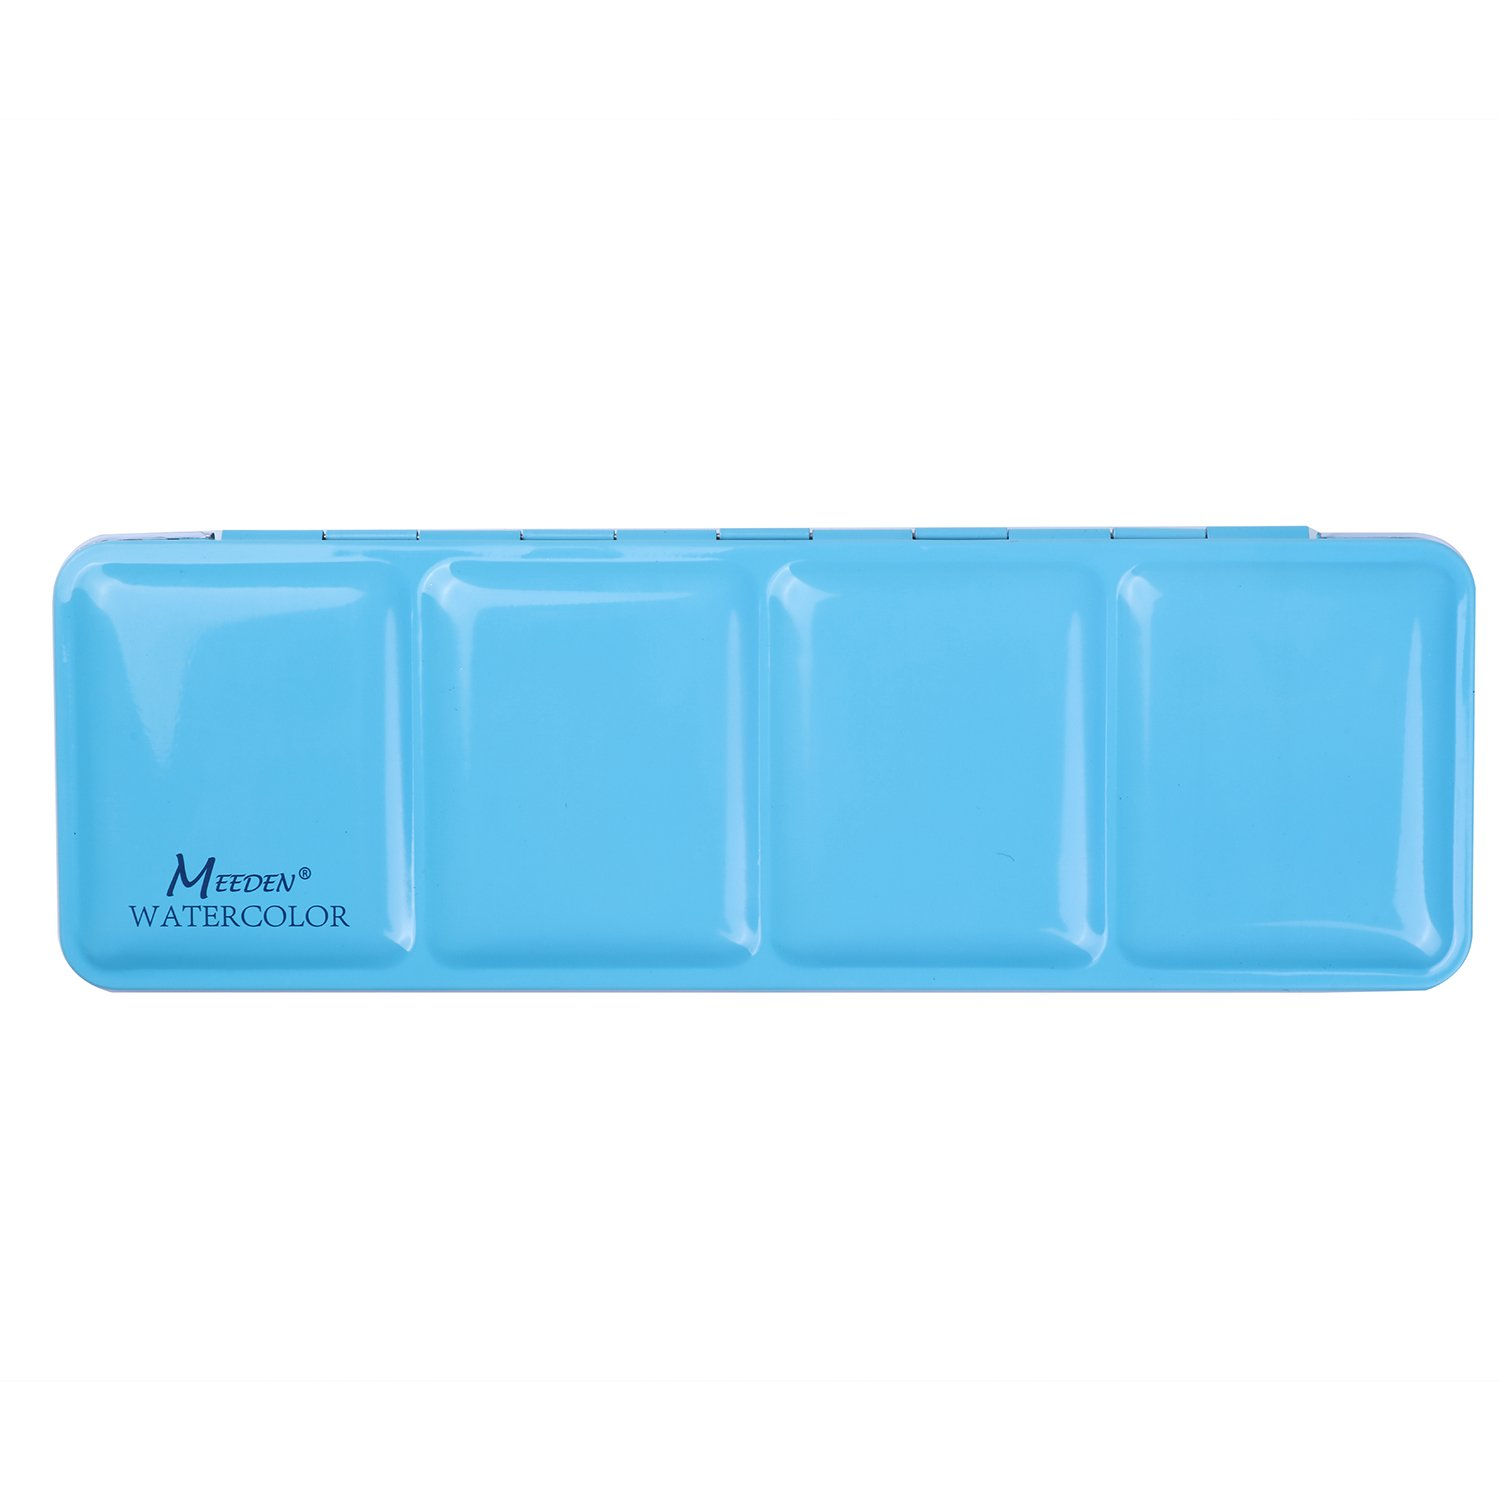 MEEDEN Empty Watercolor Tins Box Palette Paint Case, Medium Blue Tin with 24 Pcs Half Pans 4336974732